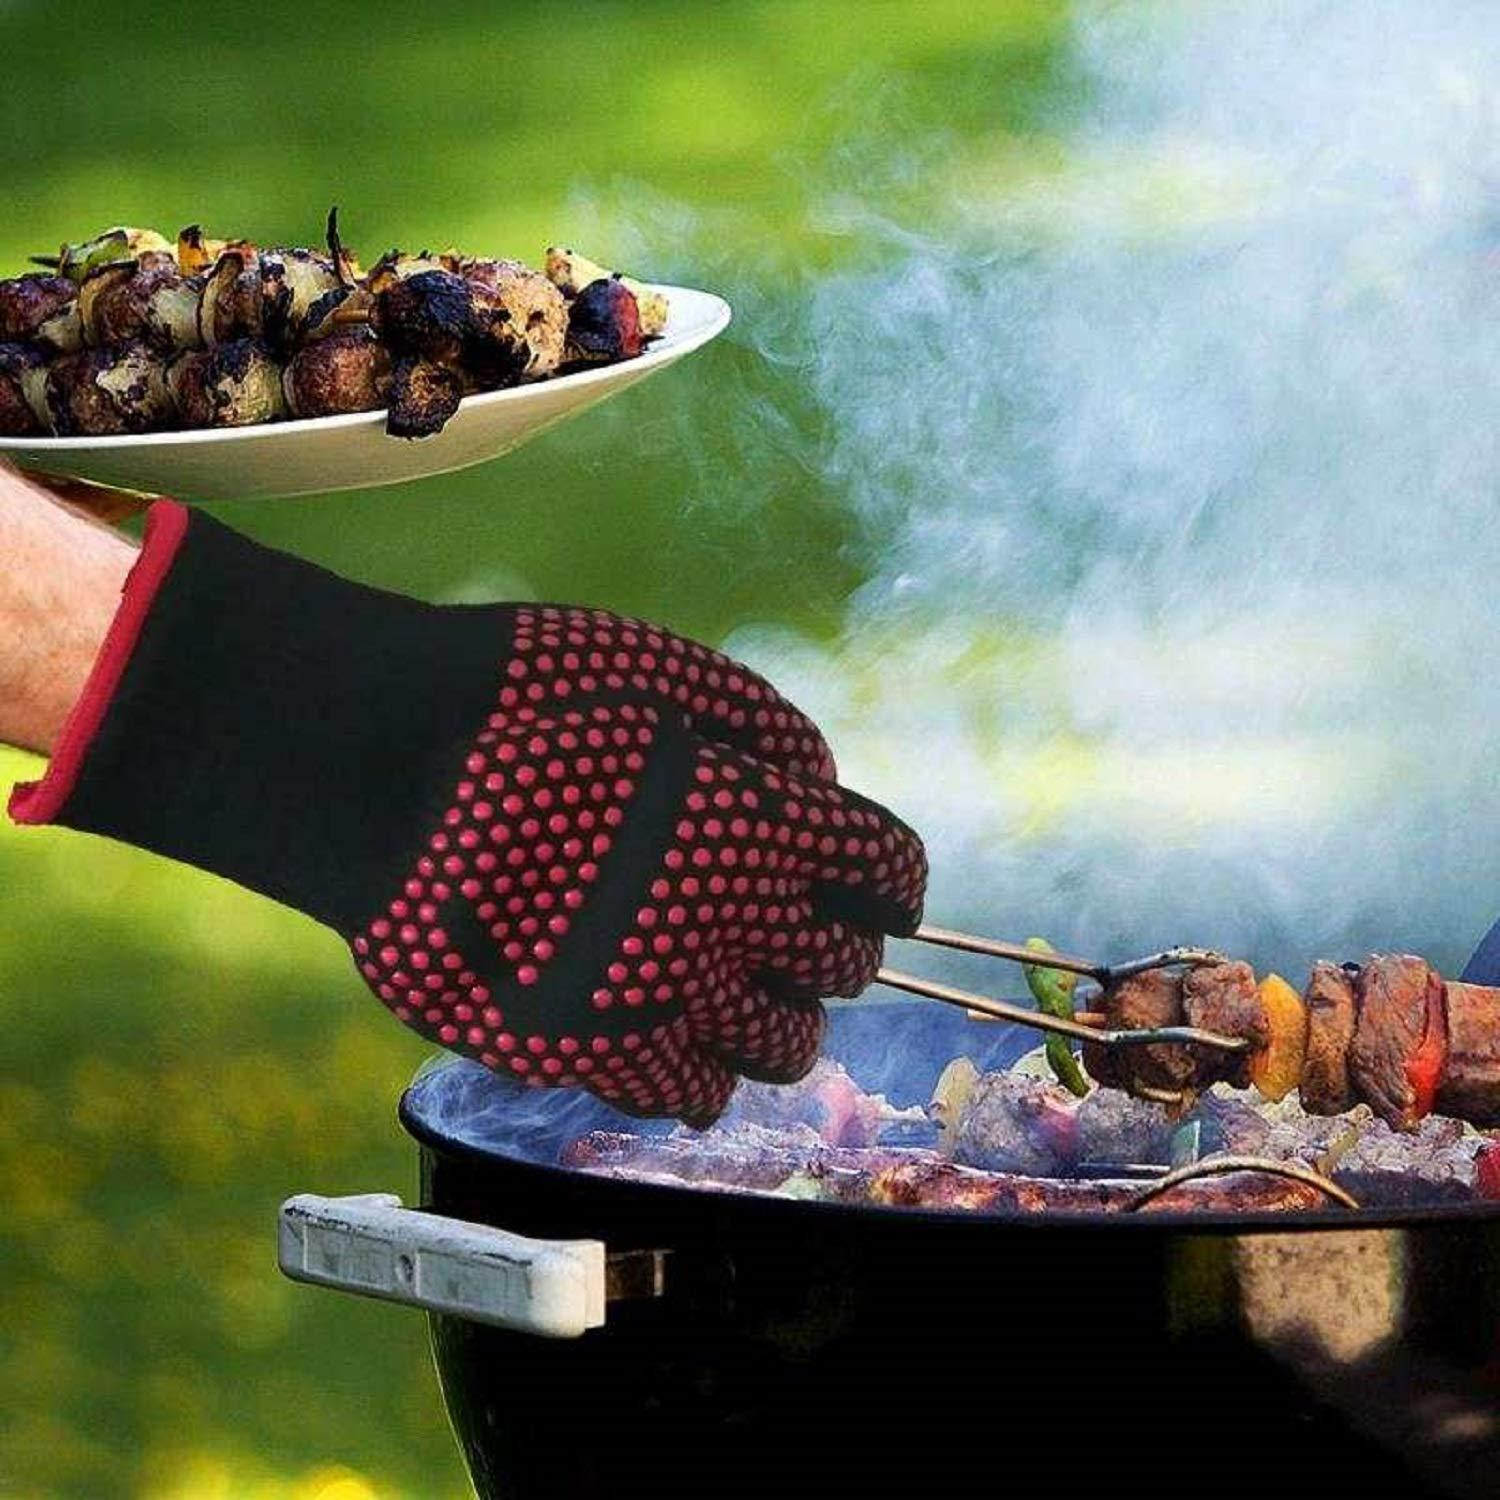 Silicon BBQ Fireproof Glove (932°F Extreme Heat Resistant)